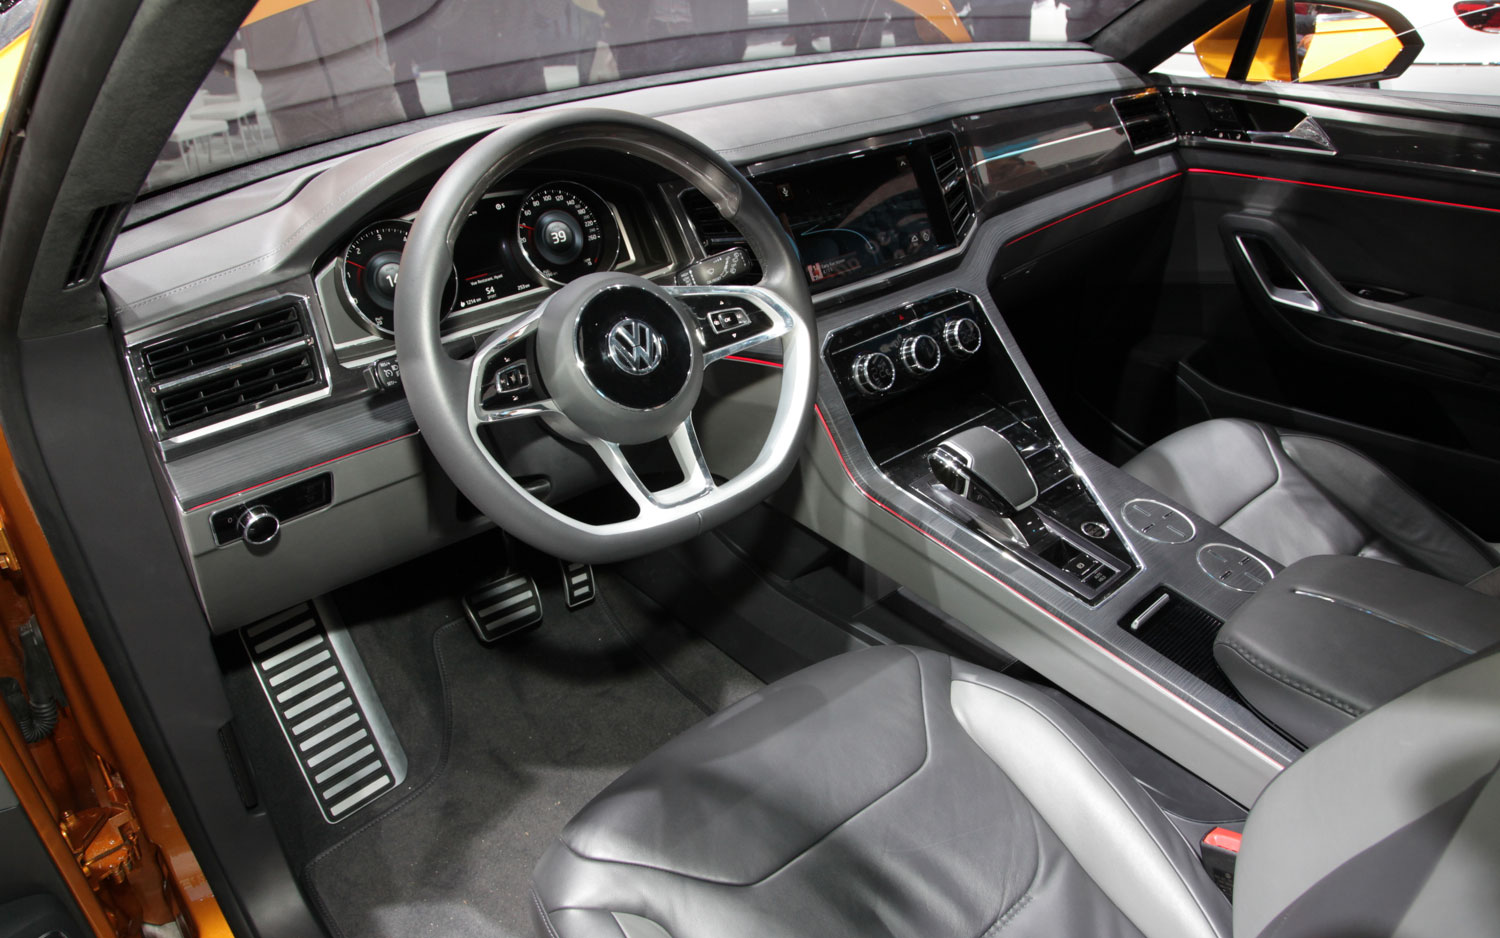 2013 Volkswagen CrossBlue Coupe Interior Dashboard